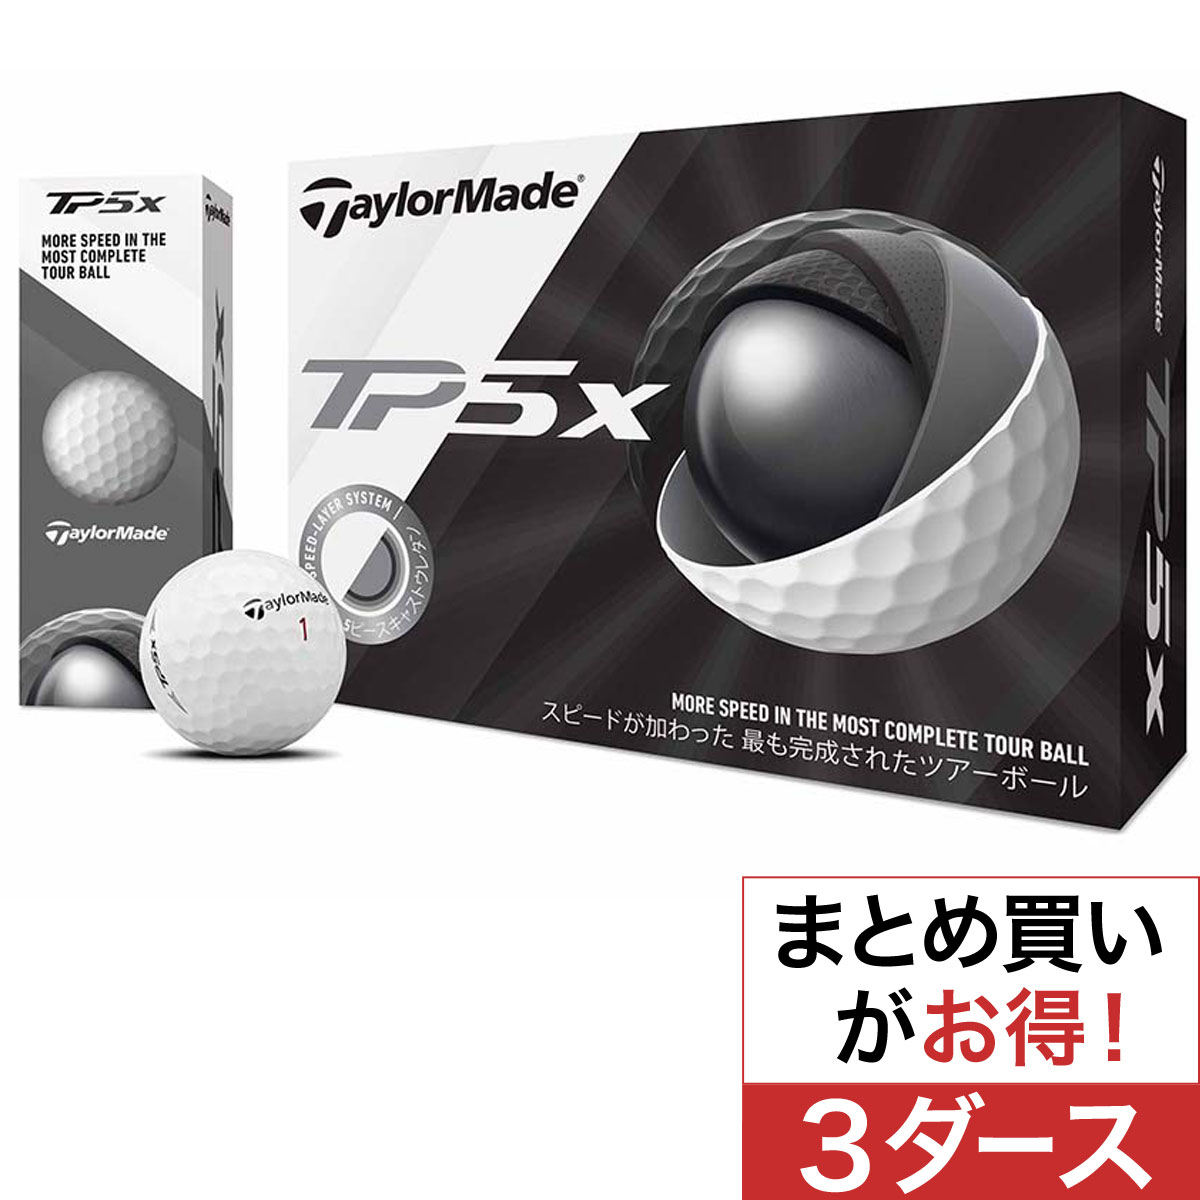 TP5x ボール 3ダースセット